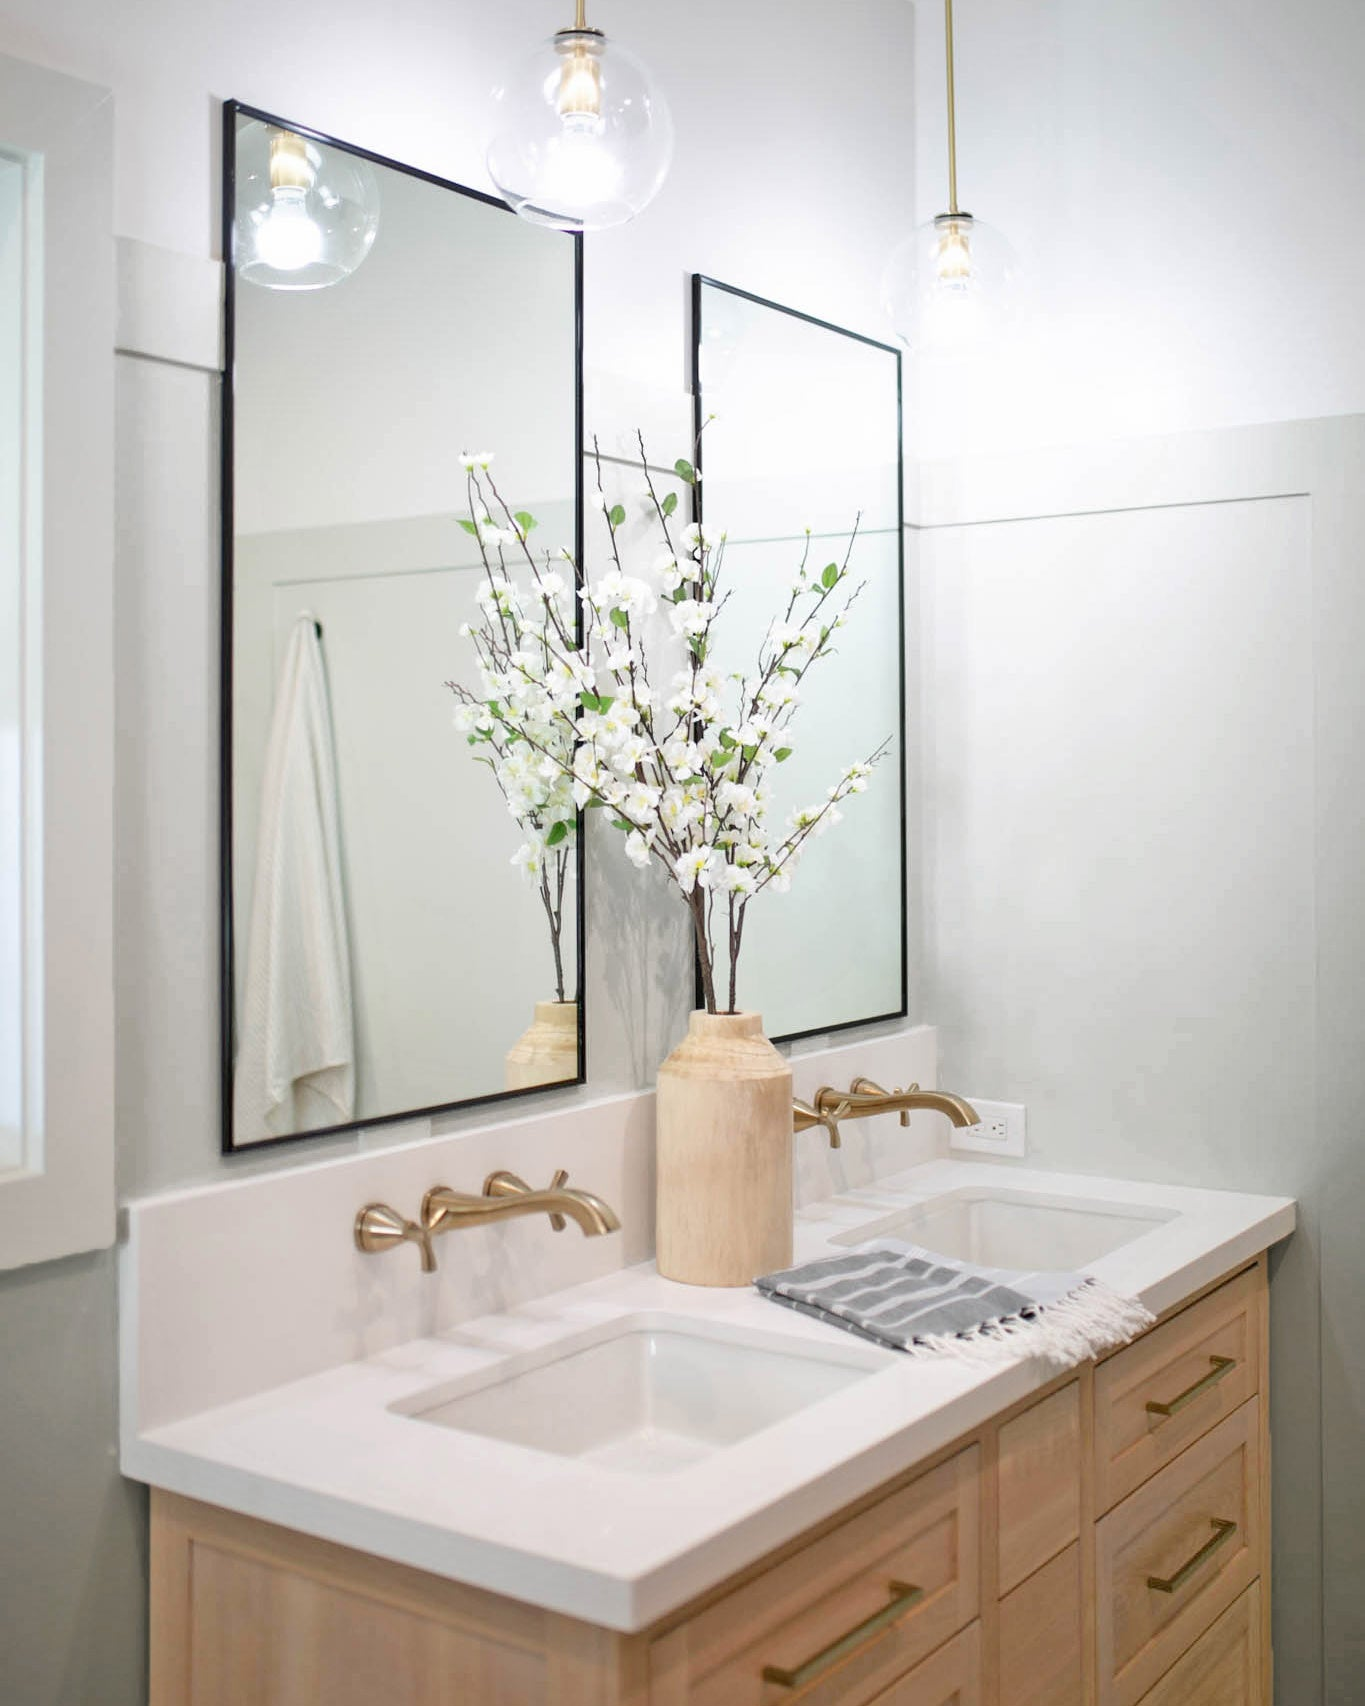 This main bathroom uses a light greige paint to create a calming vibe. The light gray paint color is Penthouse by Clare.